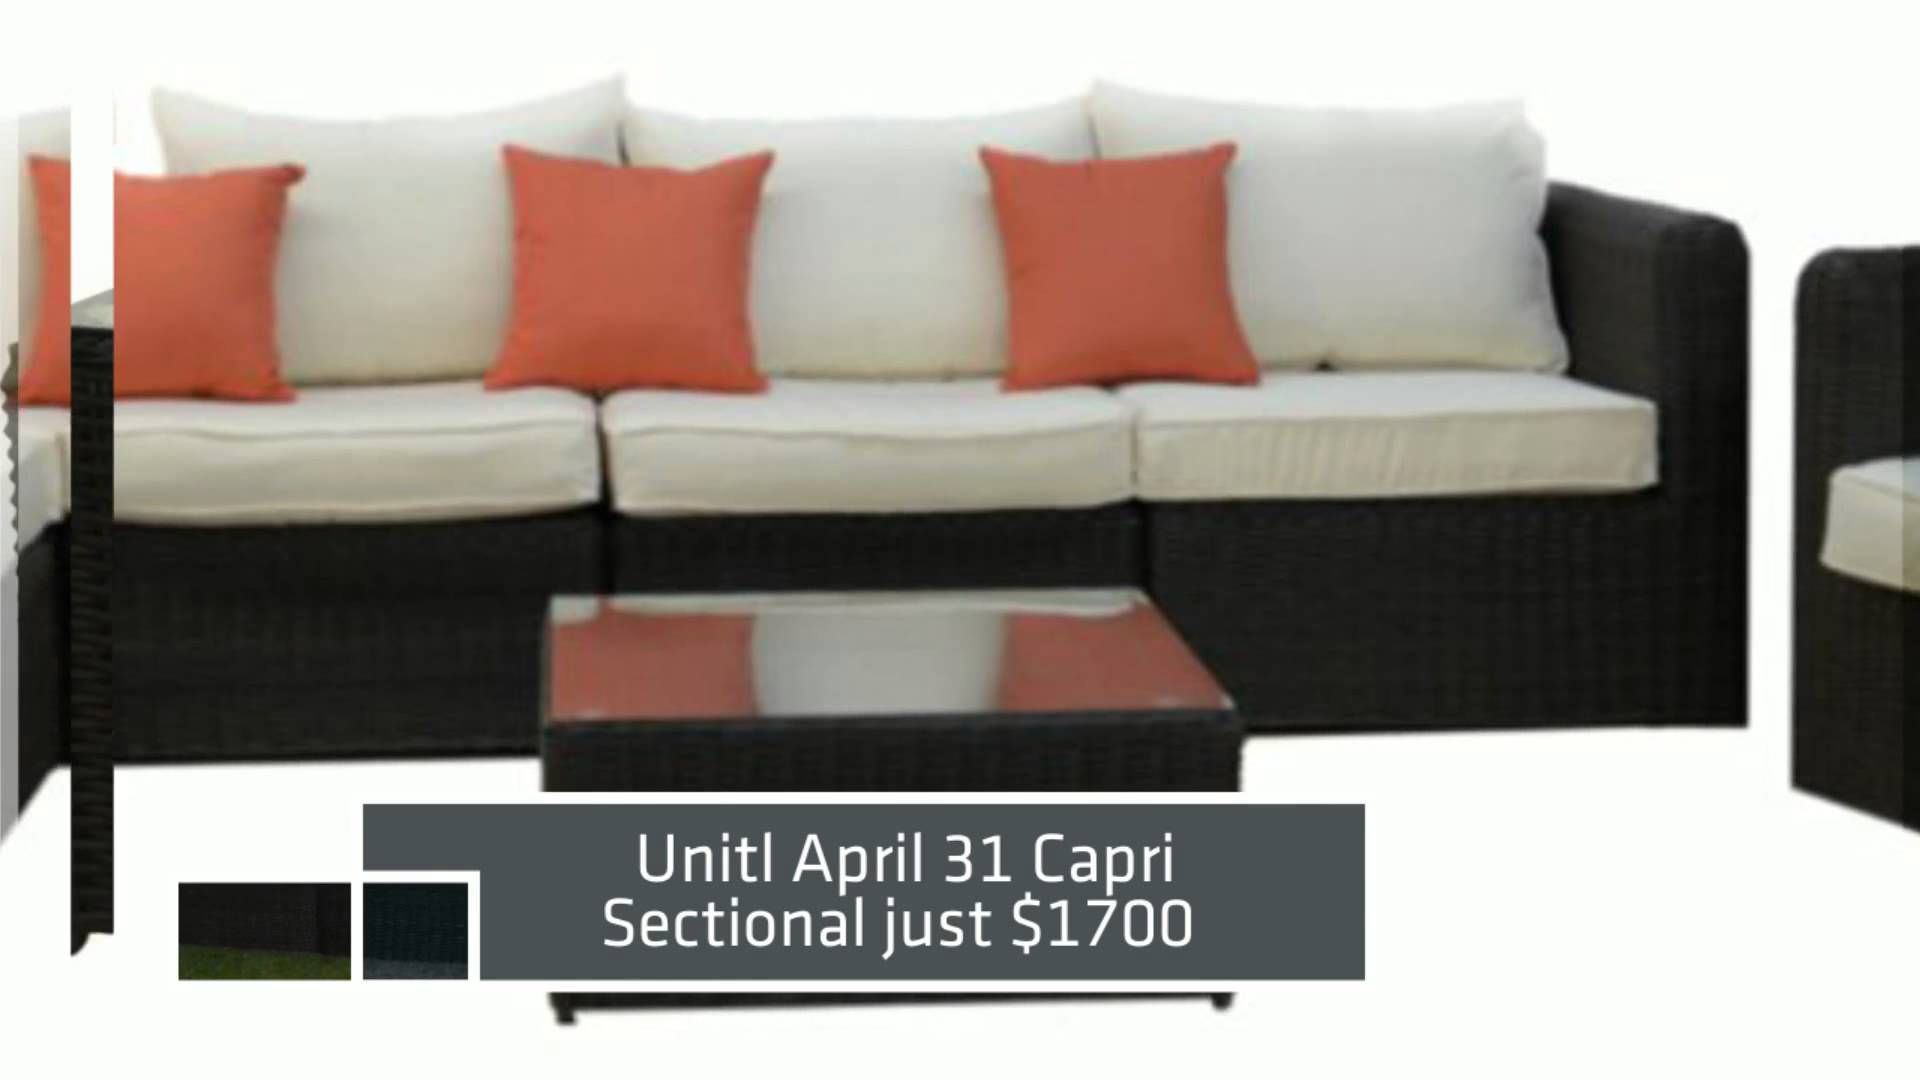 jaavan patio furniture capri sectional outdoor patio for d rh pinterest com jaavan patio furniture and upholstery miami fl jaavan patio furniture coconut grove